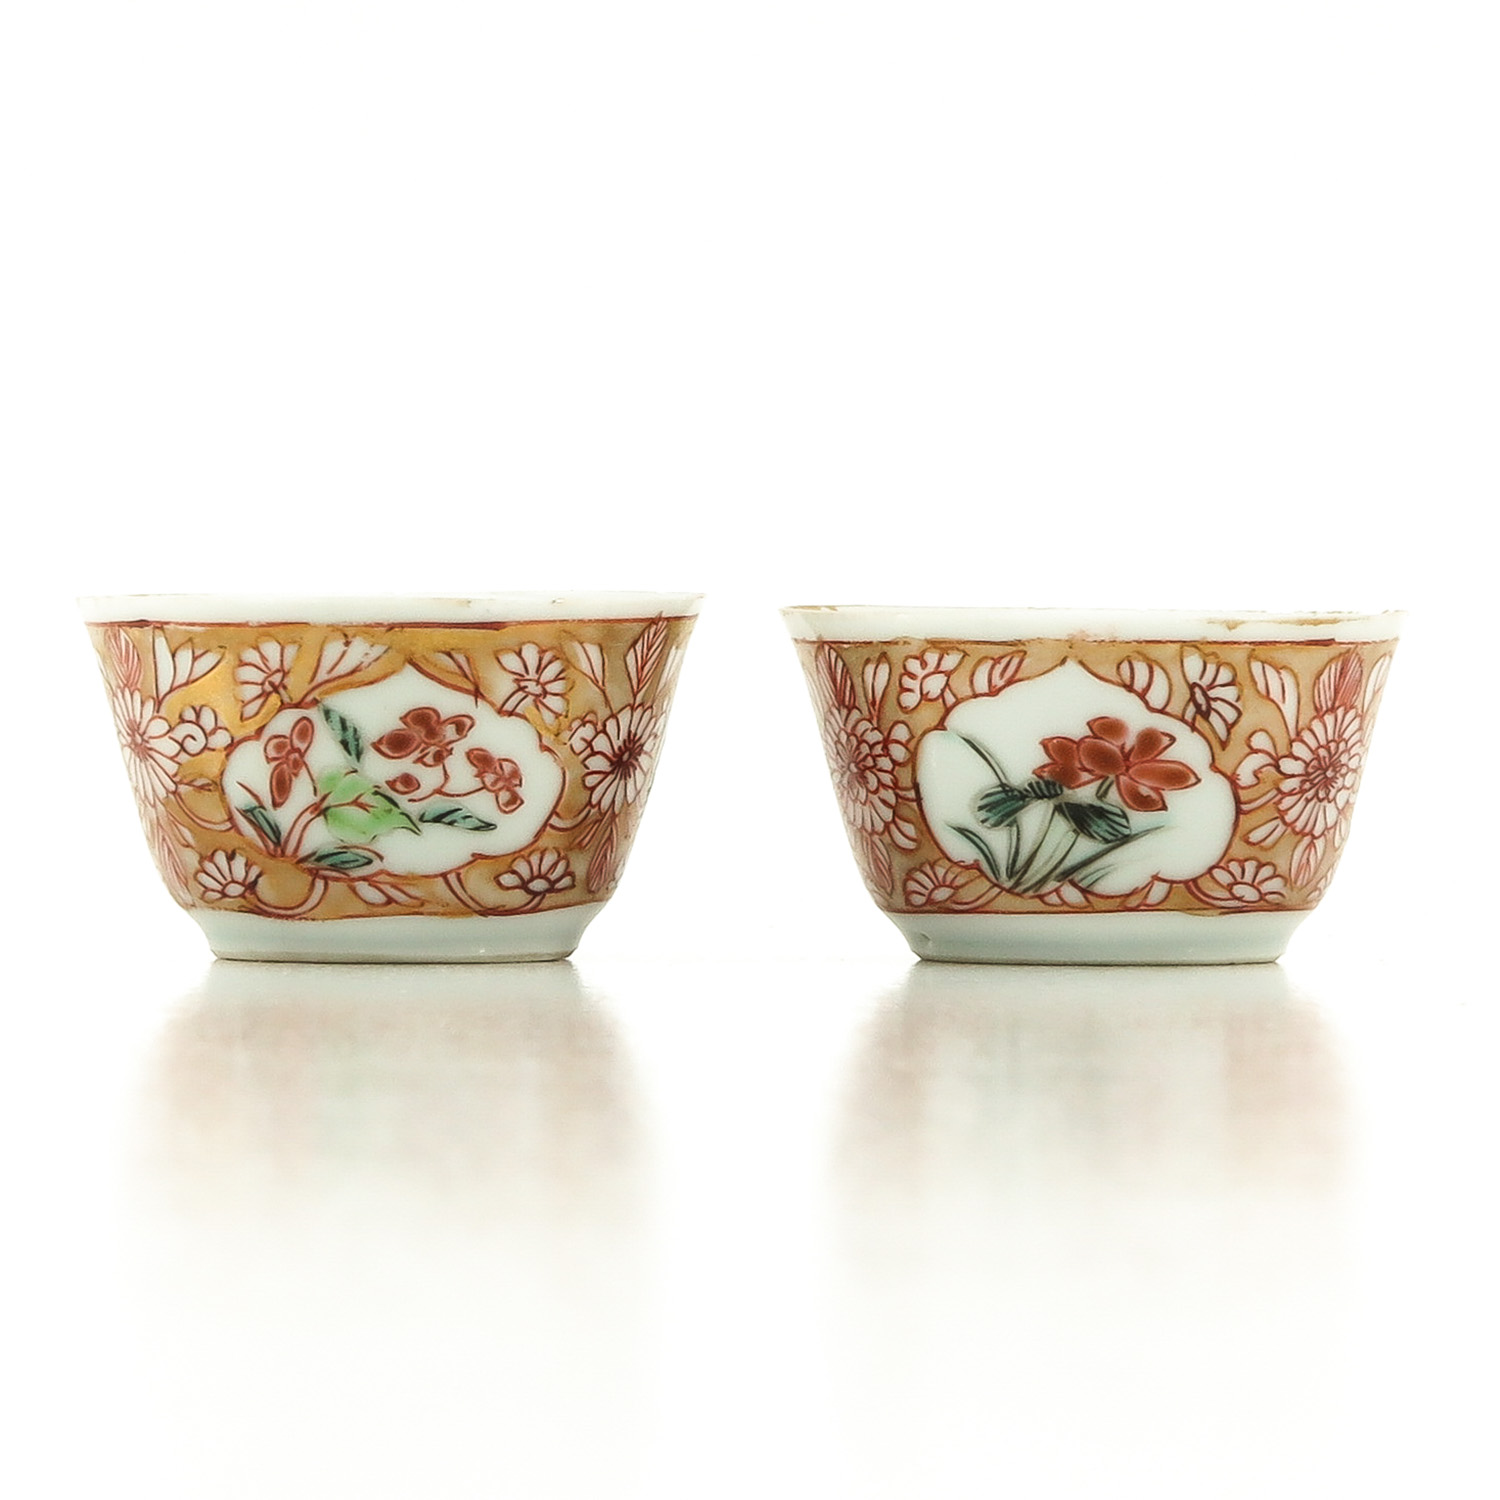 A Set of 2 Cups and Saucers - Image 4 of 10